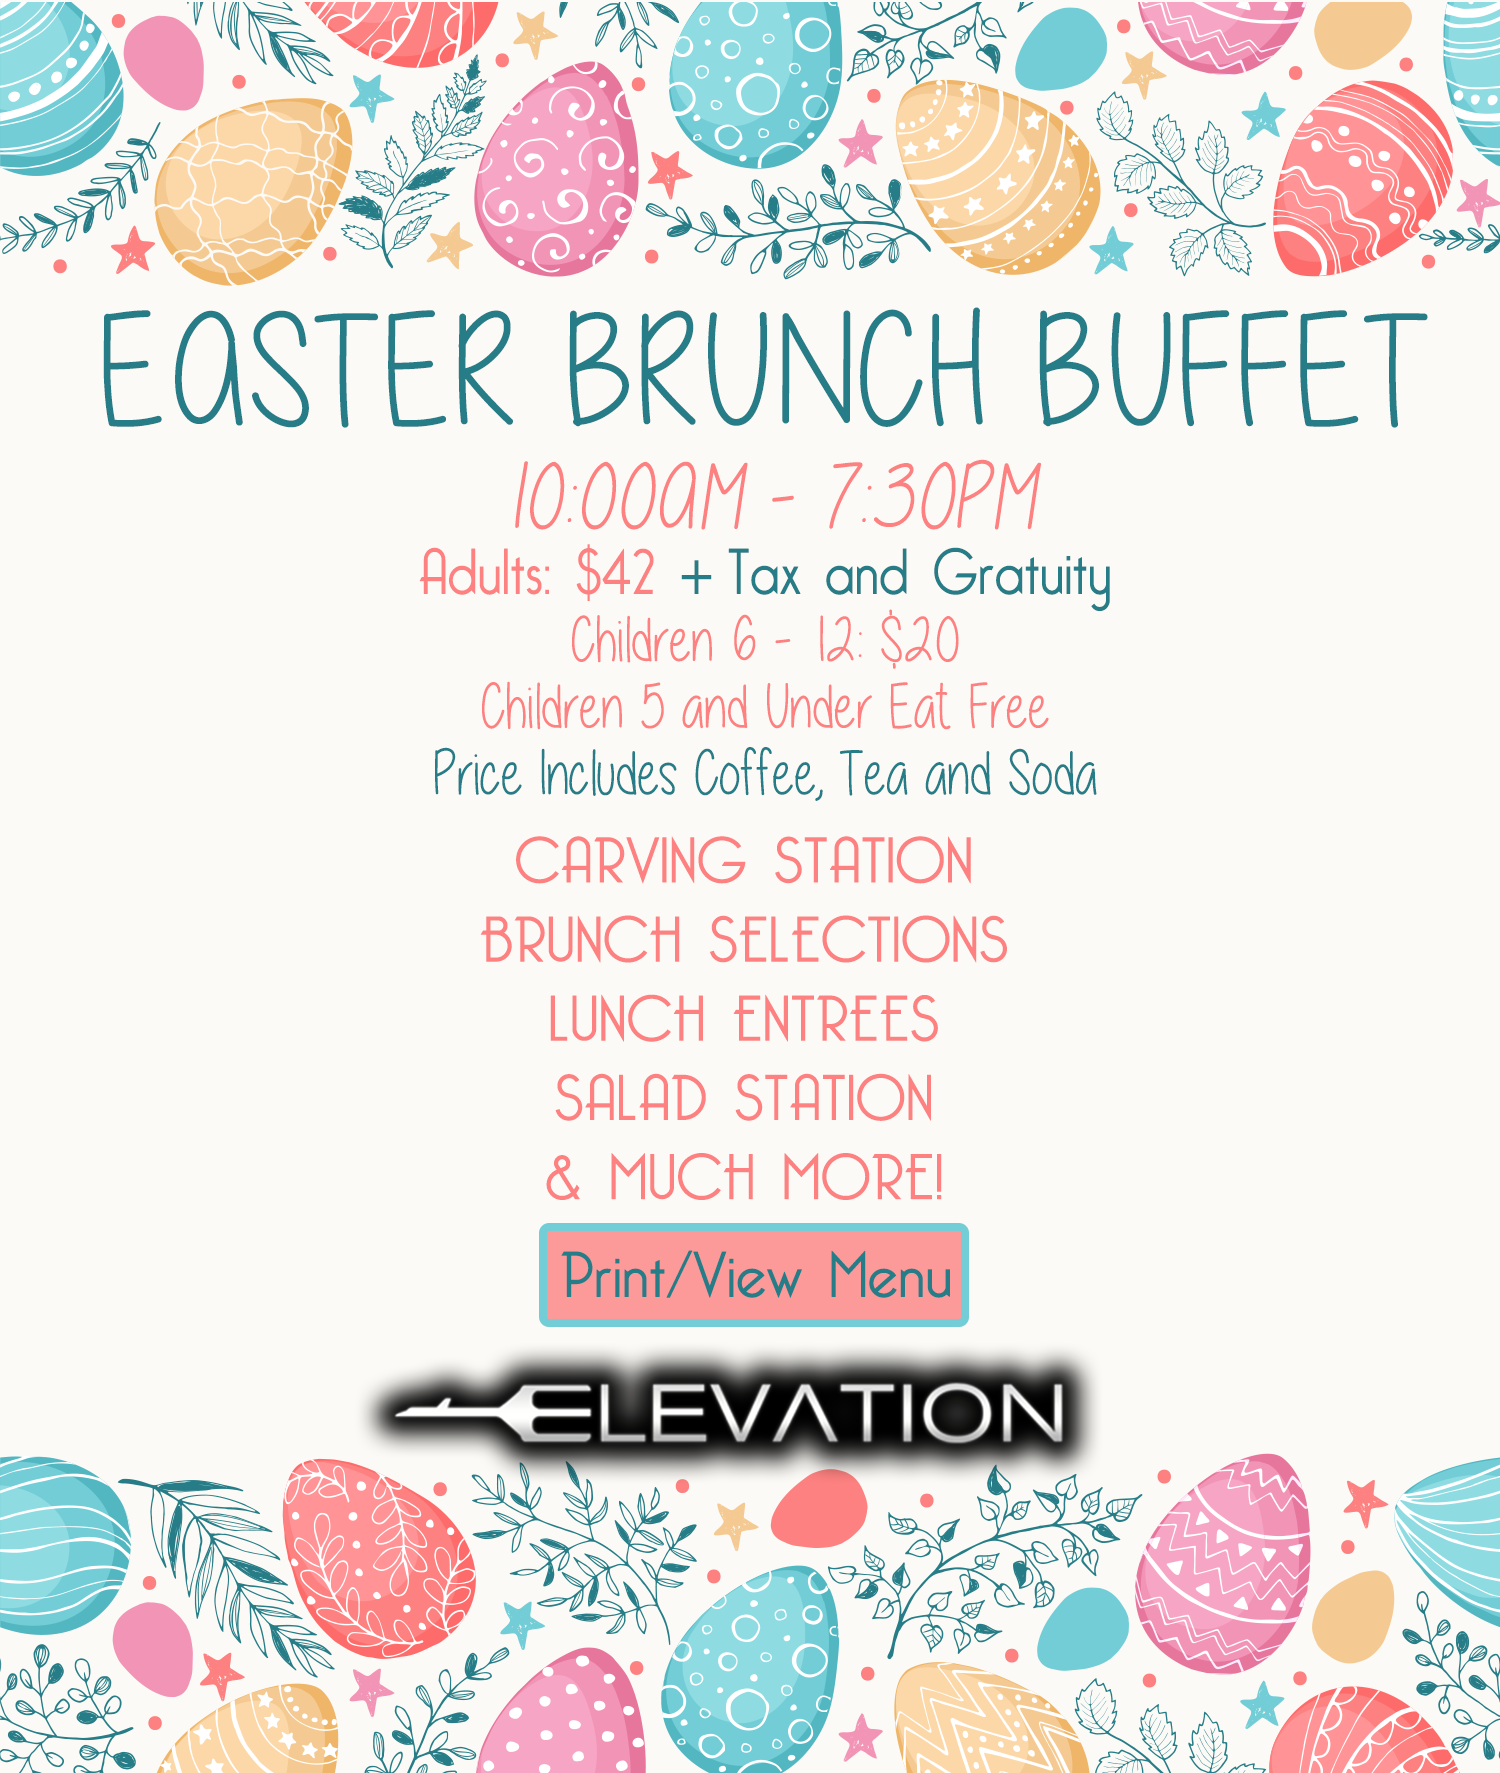 Easter Brunch Buffet. 10am -7:30 pm. Adults $42 + tax and gratuity. Children 6 - 12 $20, Children 5 and under eat free. Price includes coffee, tea and soda. Carving station, brunch selection, lunch entrees, salad station and much more